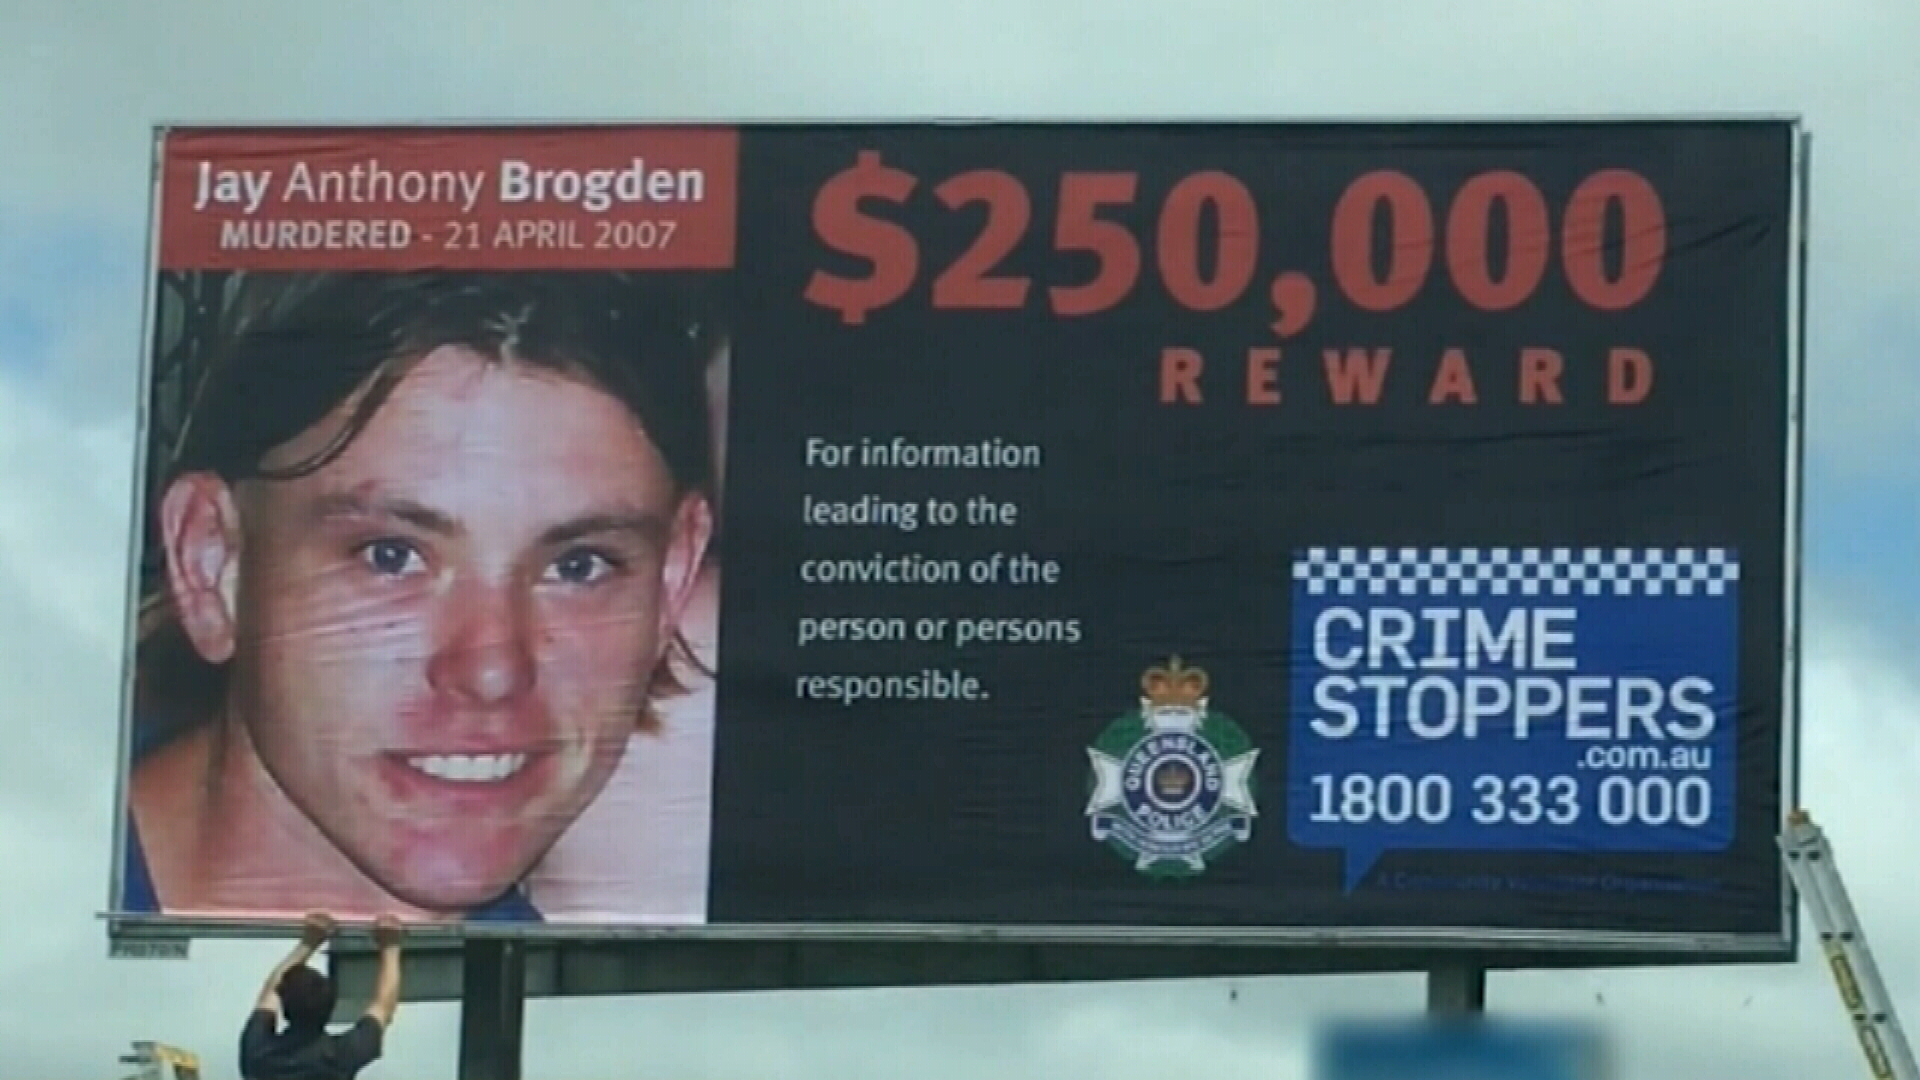 Sydney man extradited over cold case murder